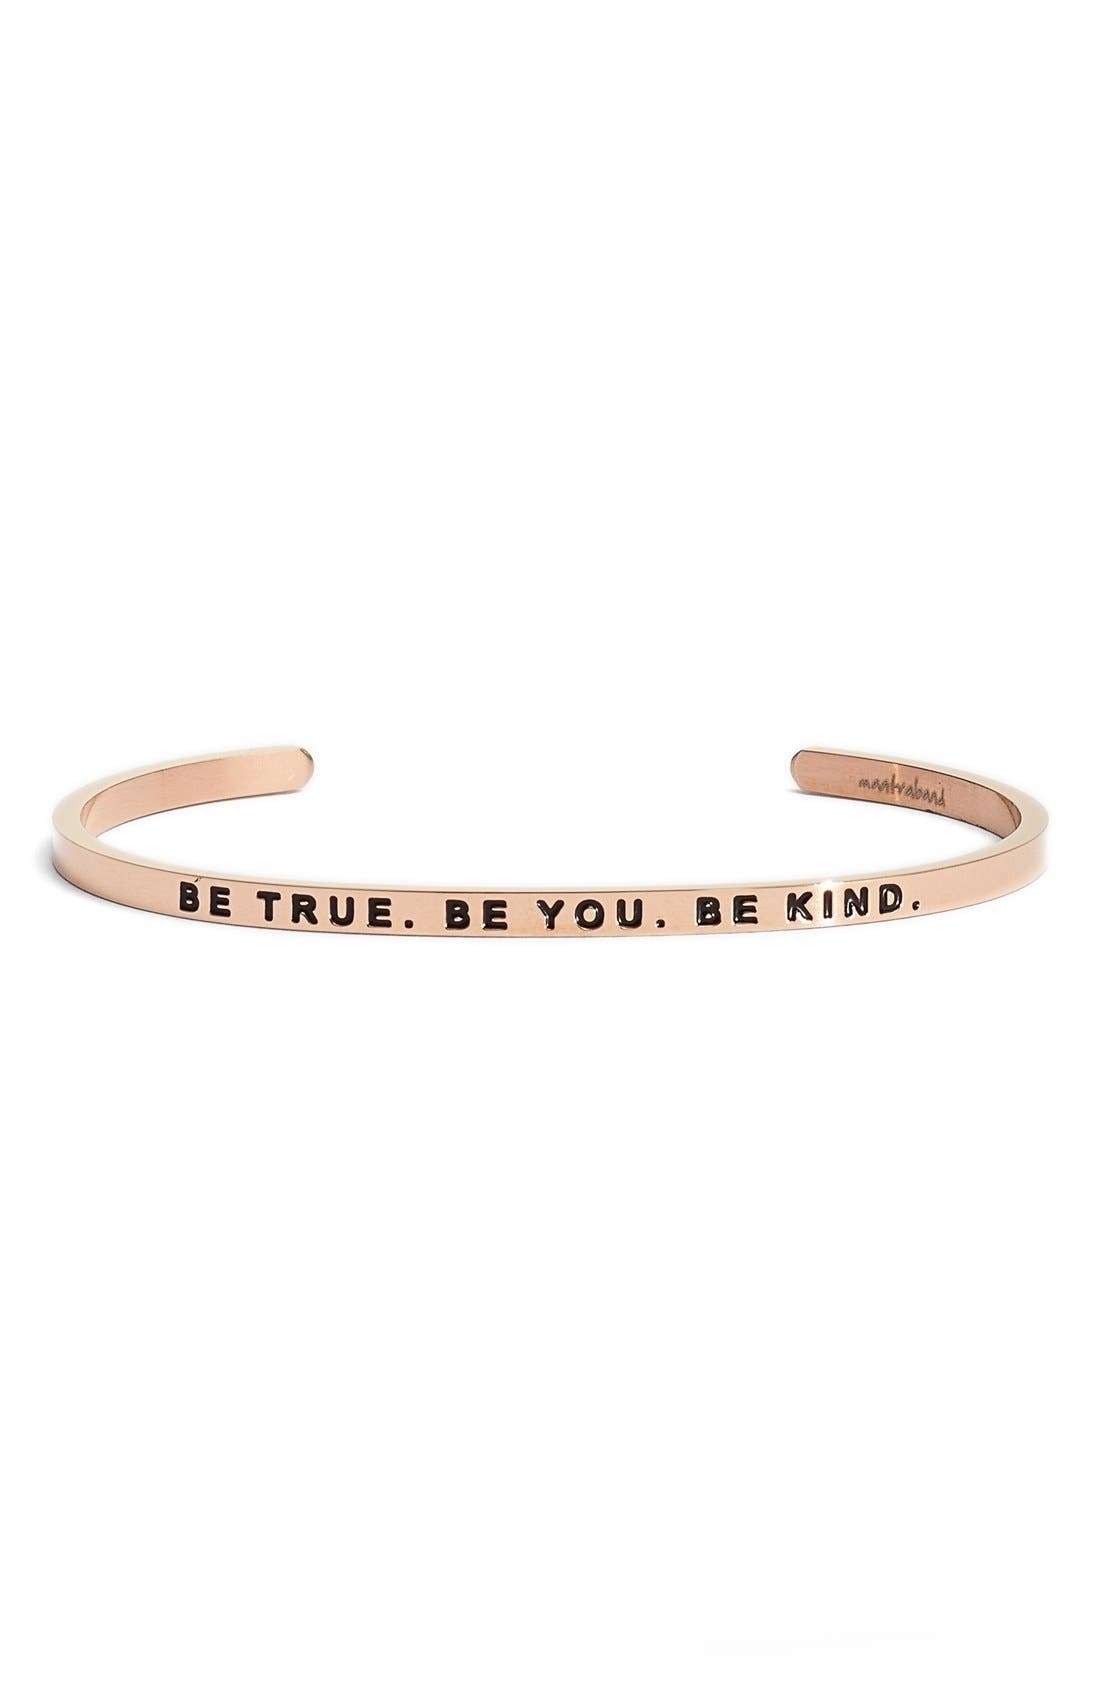 MANTRABAND 'Be True. Be You. Be Kind' Cuff